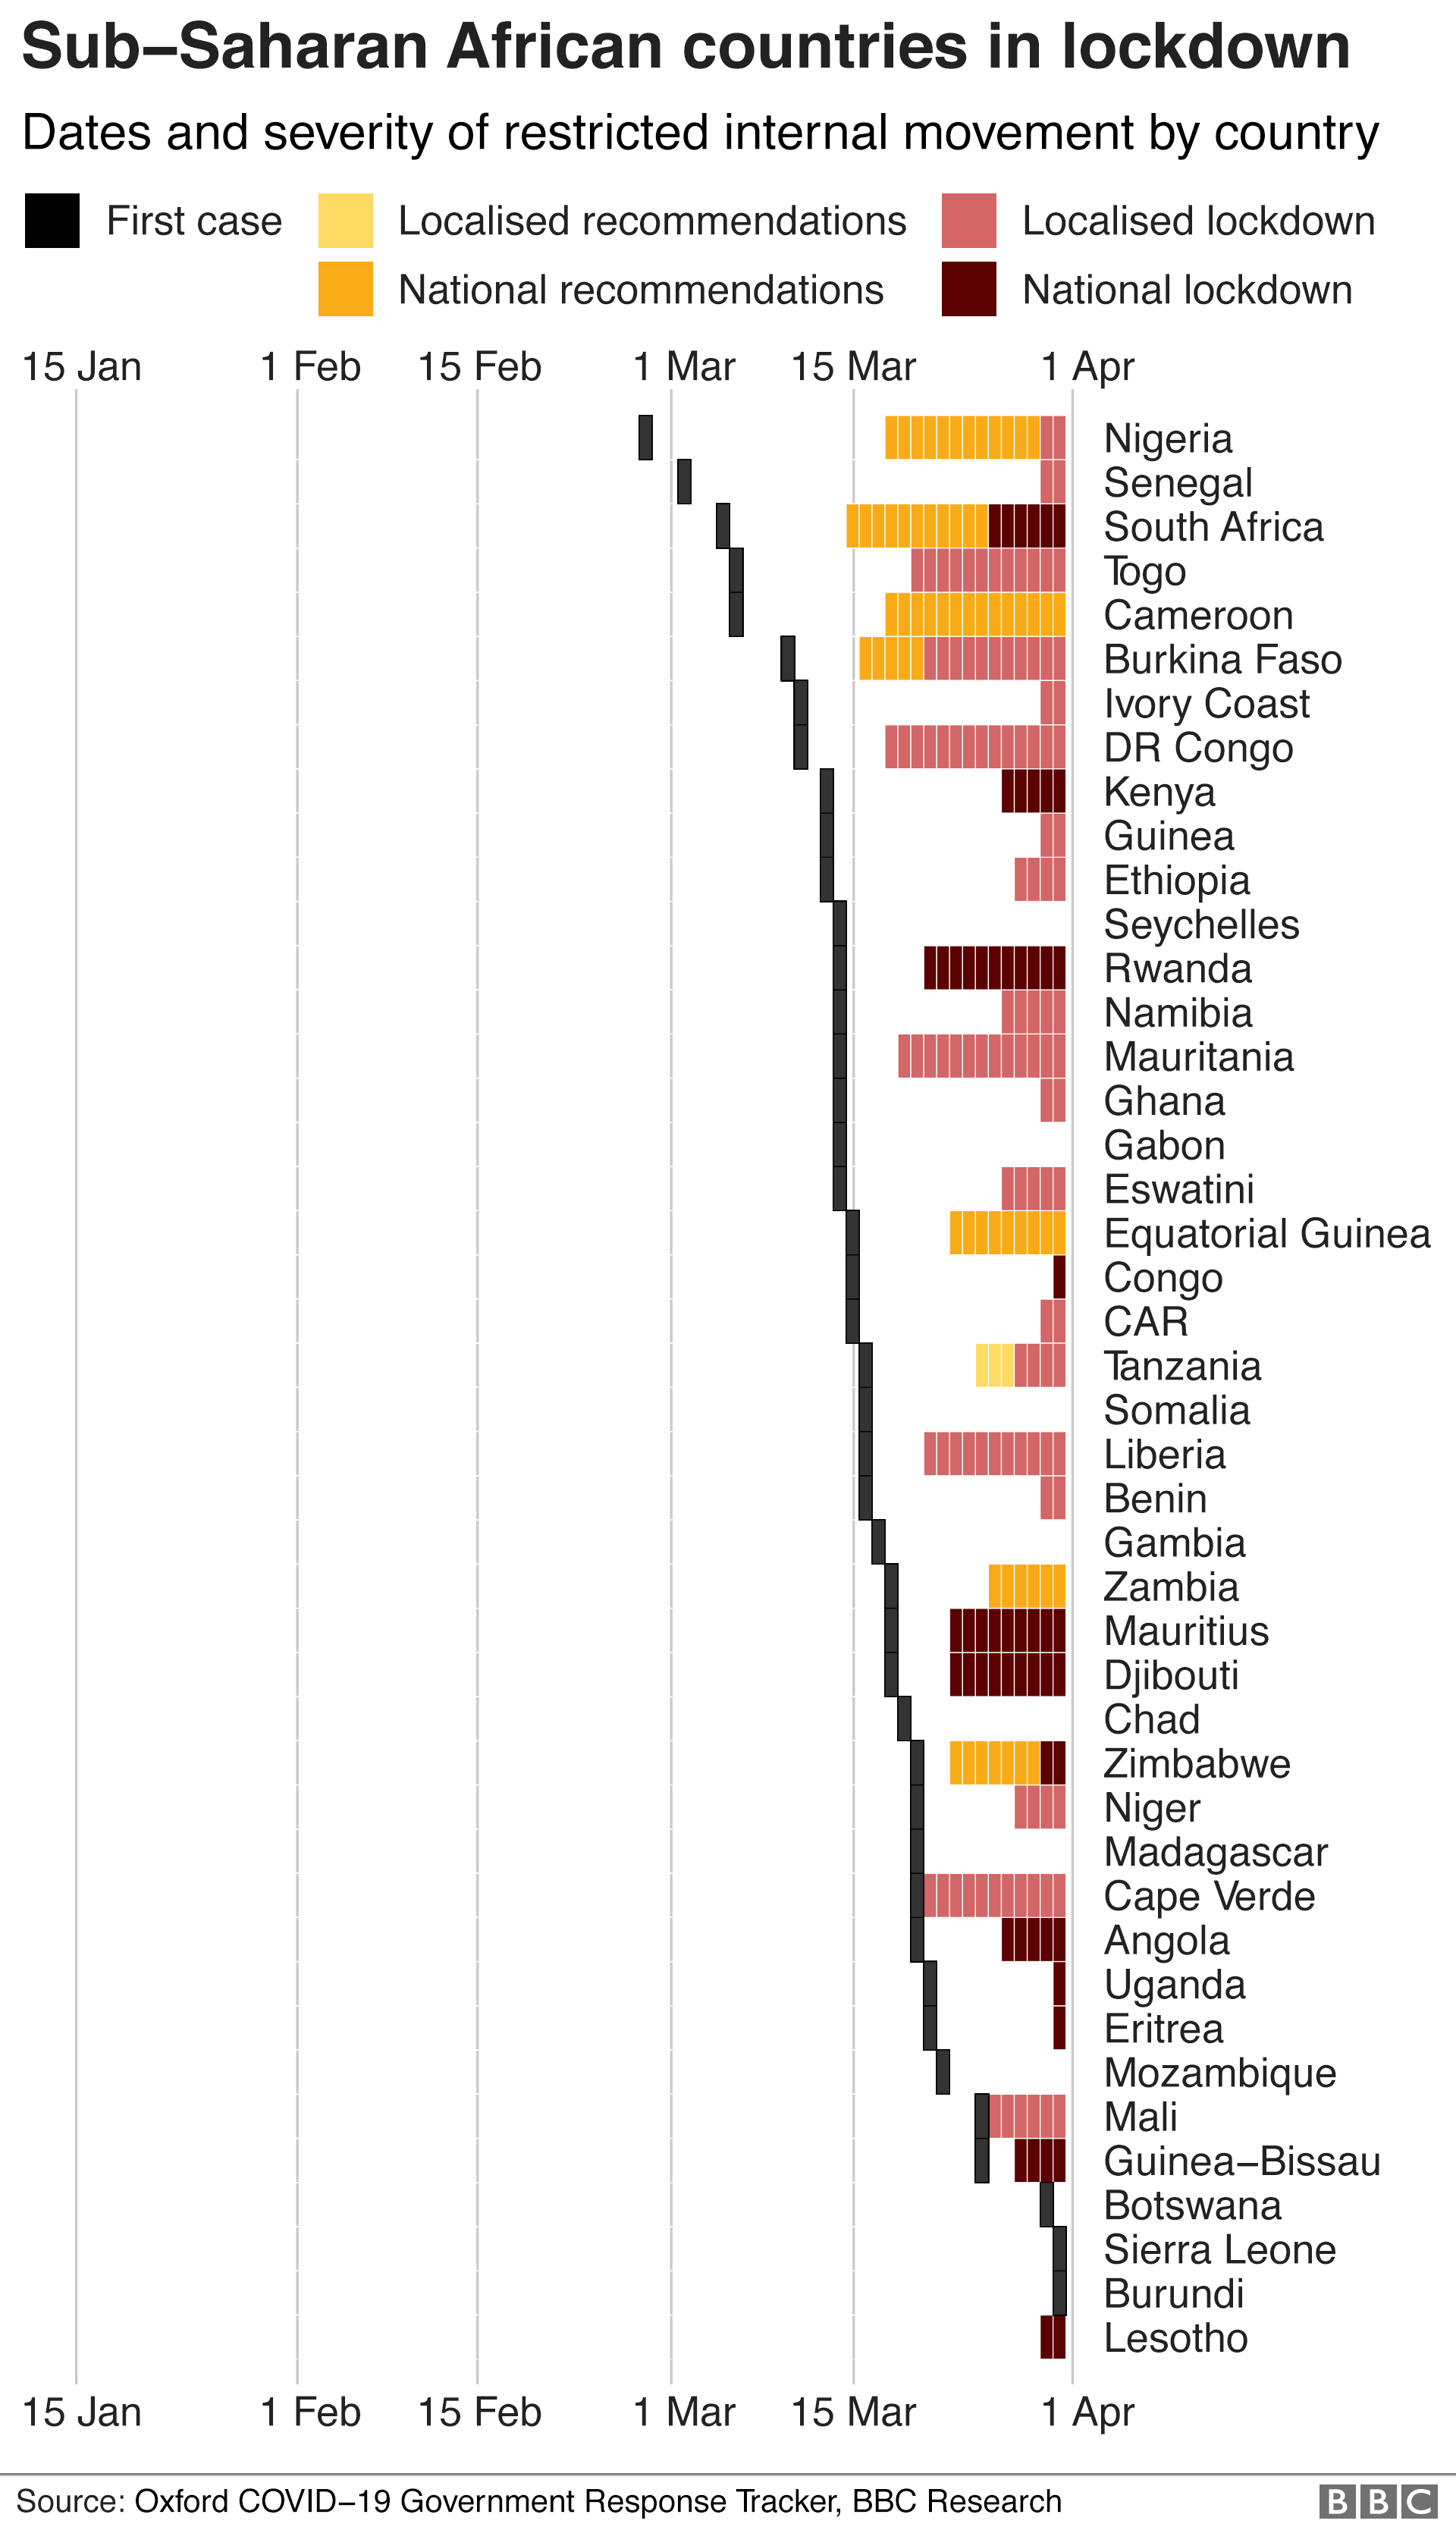 Chart showing the dates and severity of lockdown measures in Sub-Saharan Africa